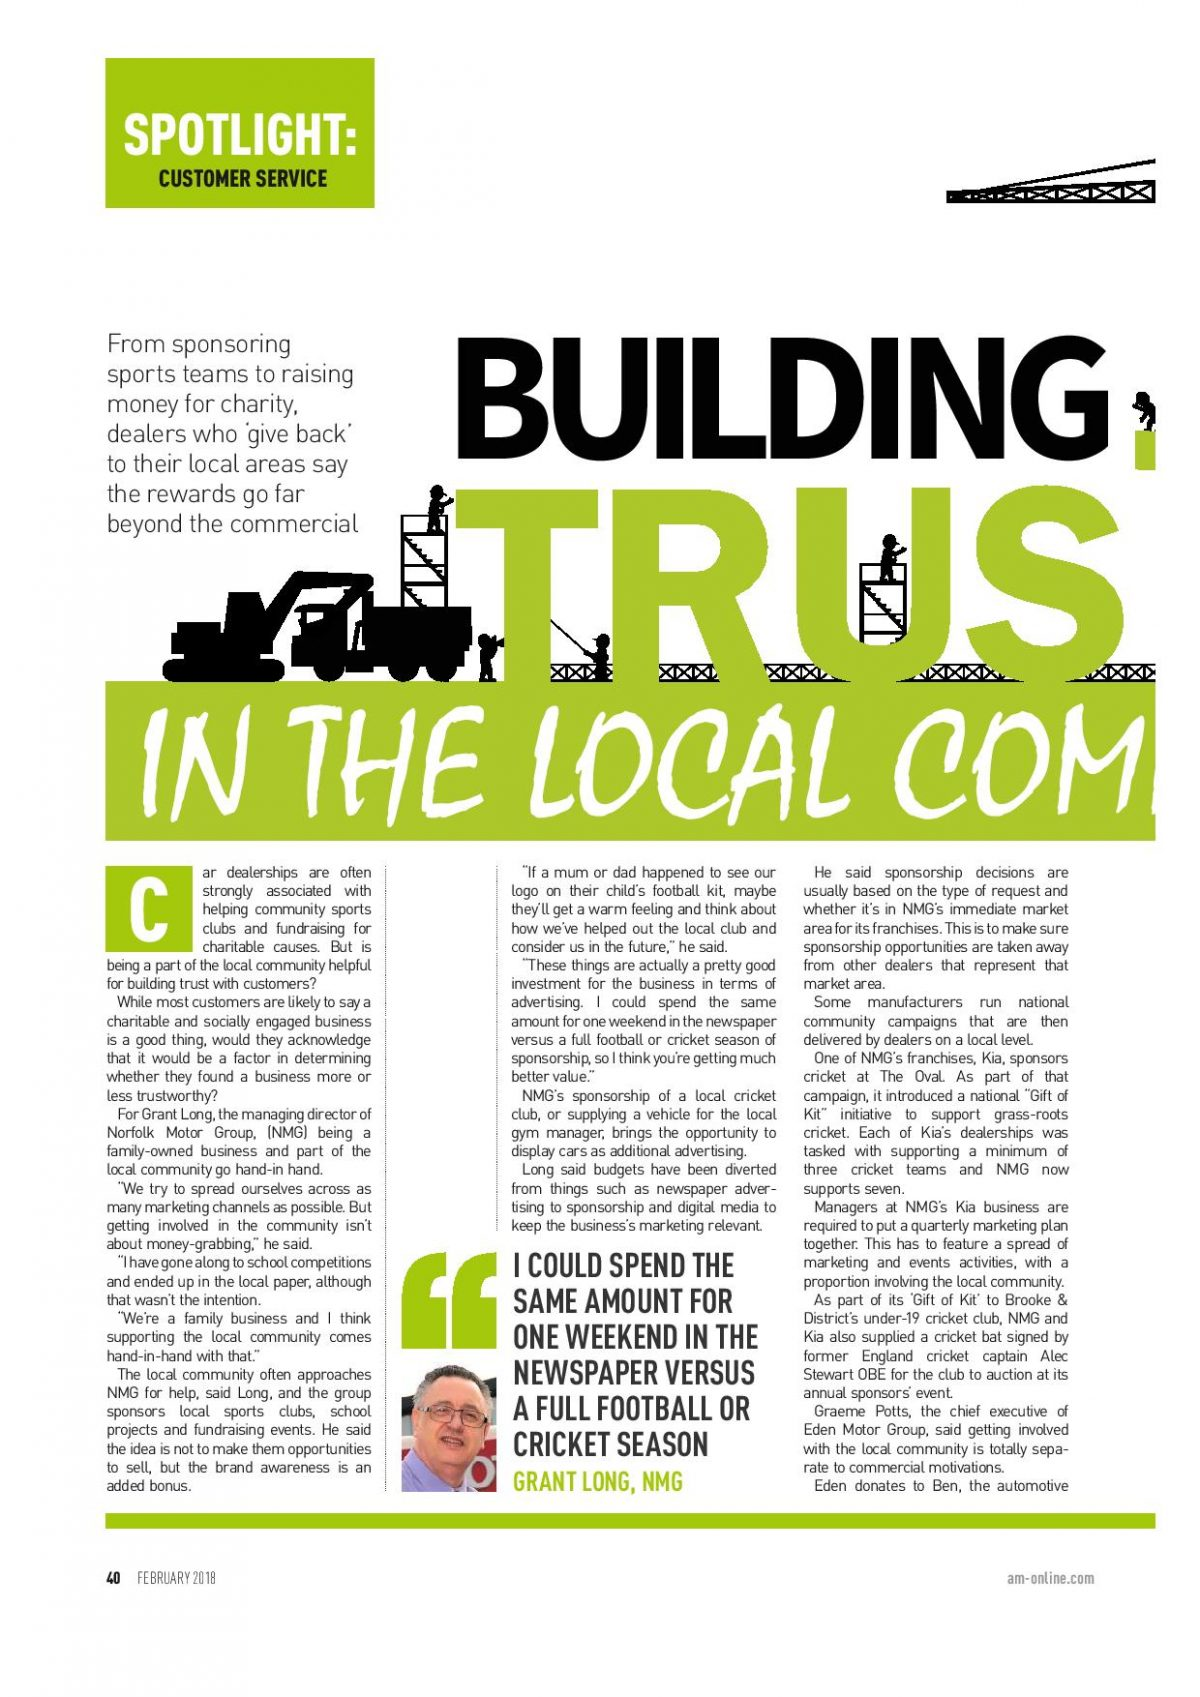 building-trust-in-the-local-community-page-001-2